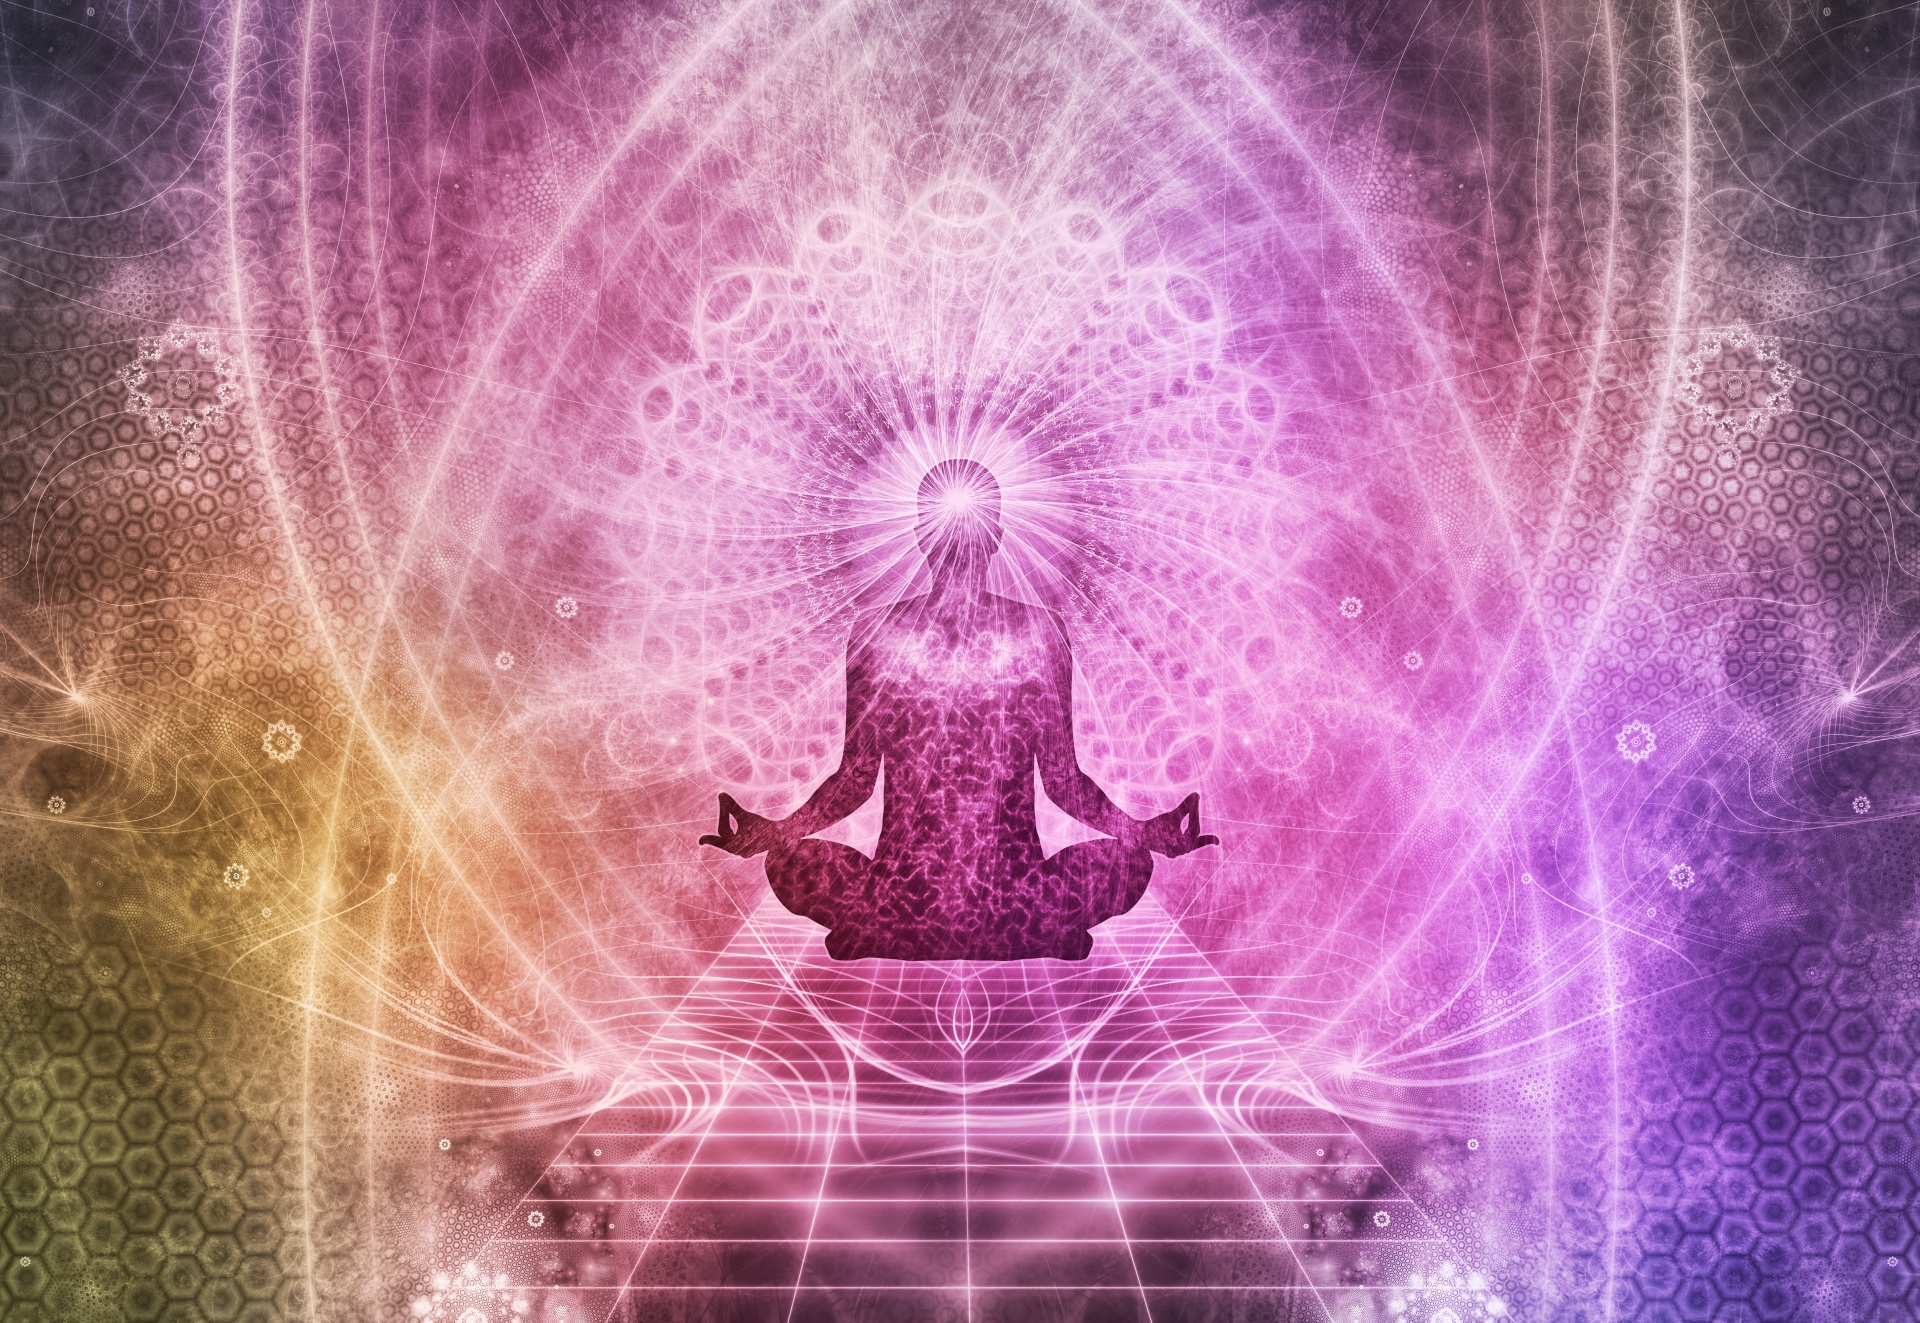 figure meditating lotus position and geometric light patterns